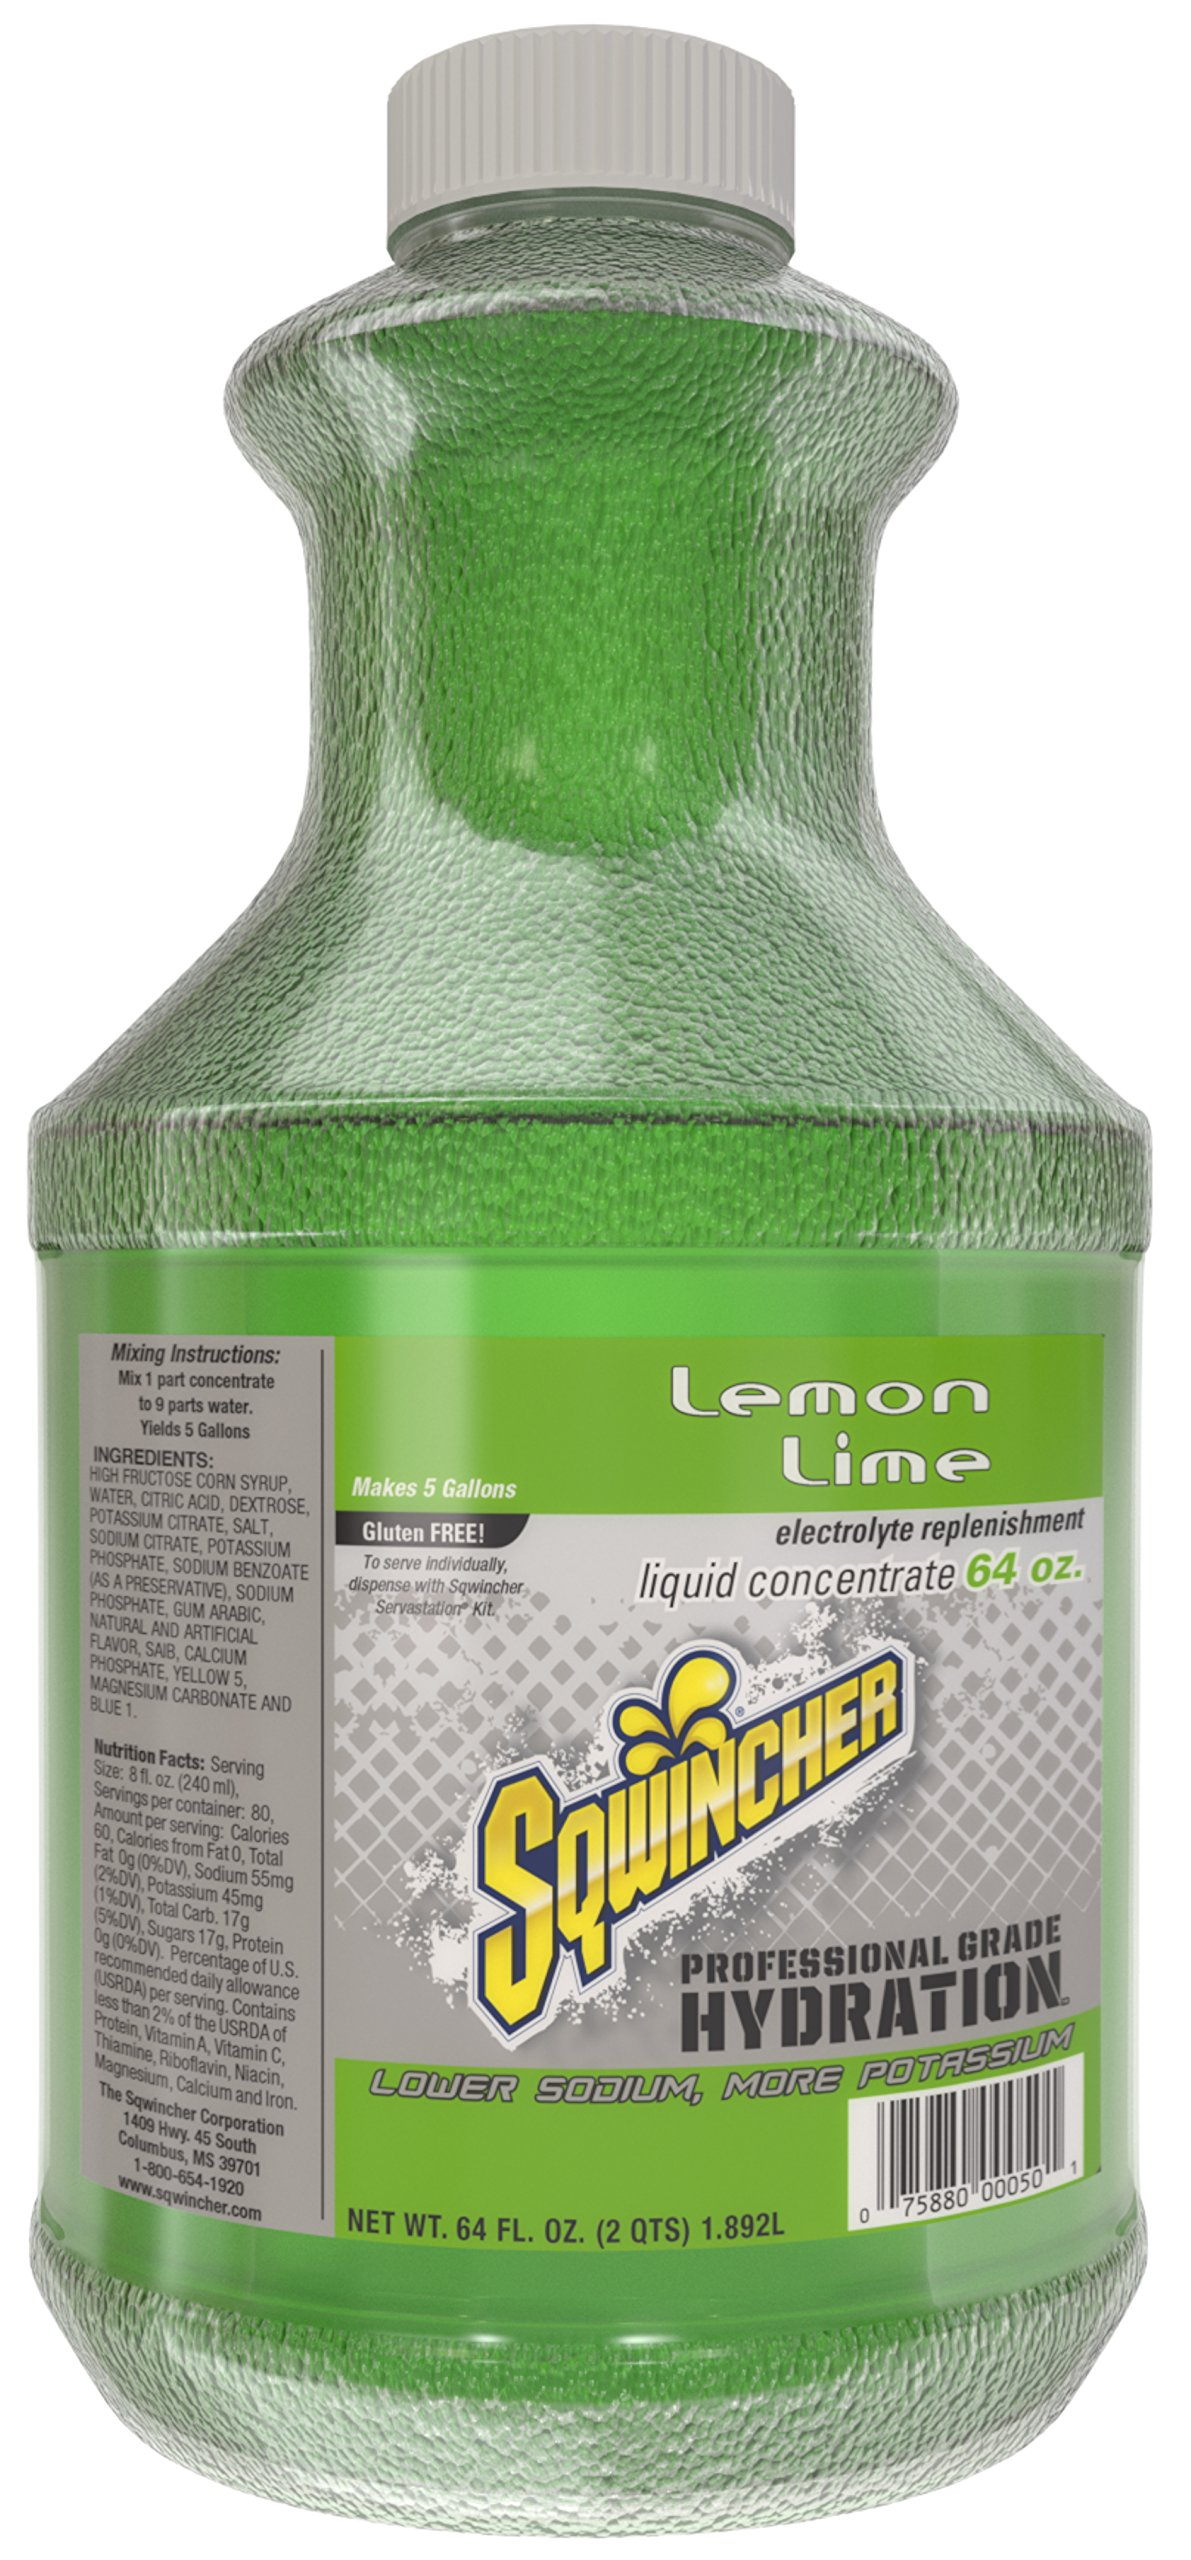 Sqwincher Liquid Concentrate Electrolyte Replacement, 5 Gallon Yield, Lemon Lime 030328-LL (Pack of 6) by Sqwincher